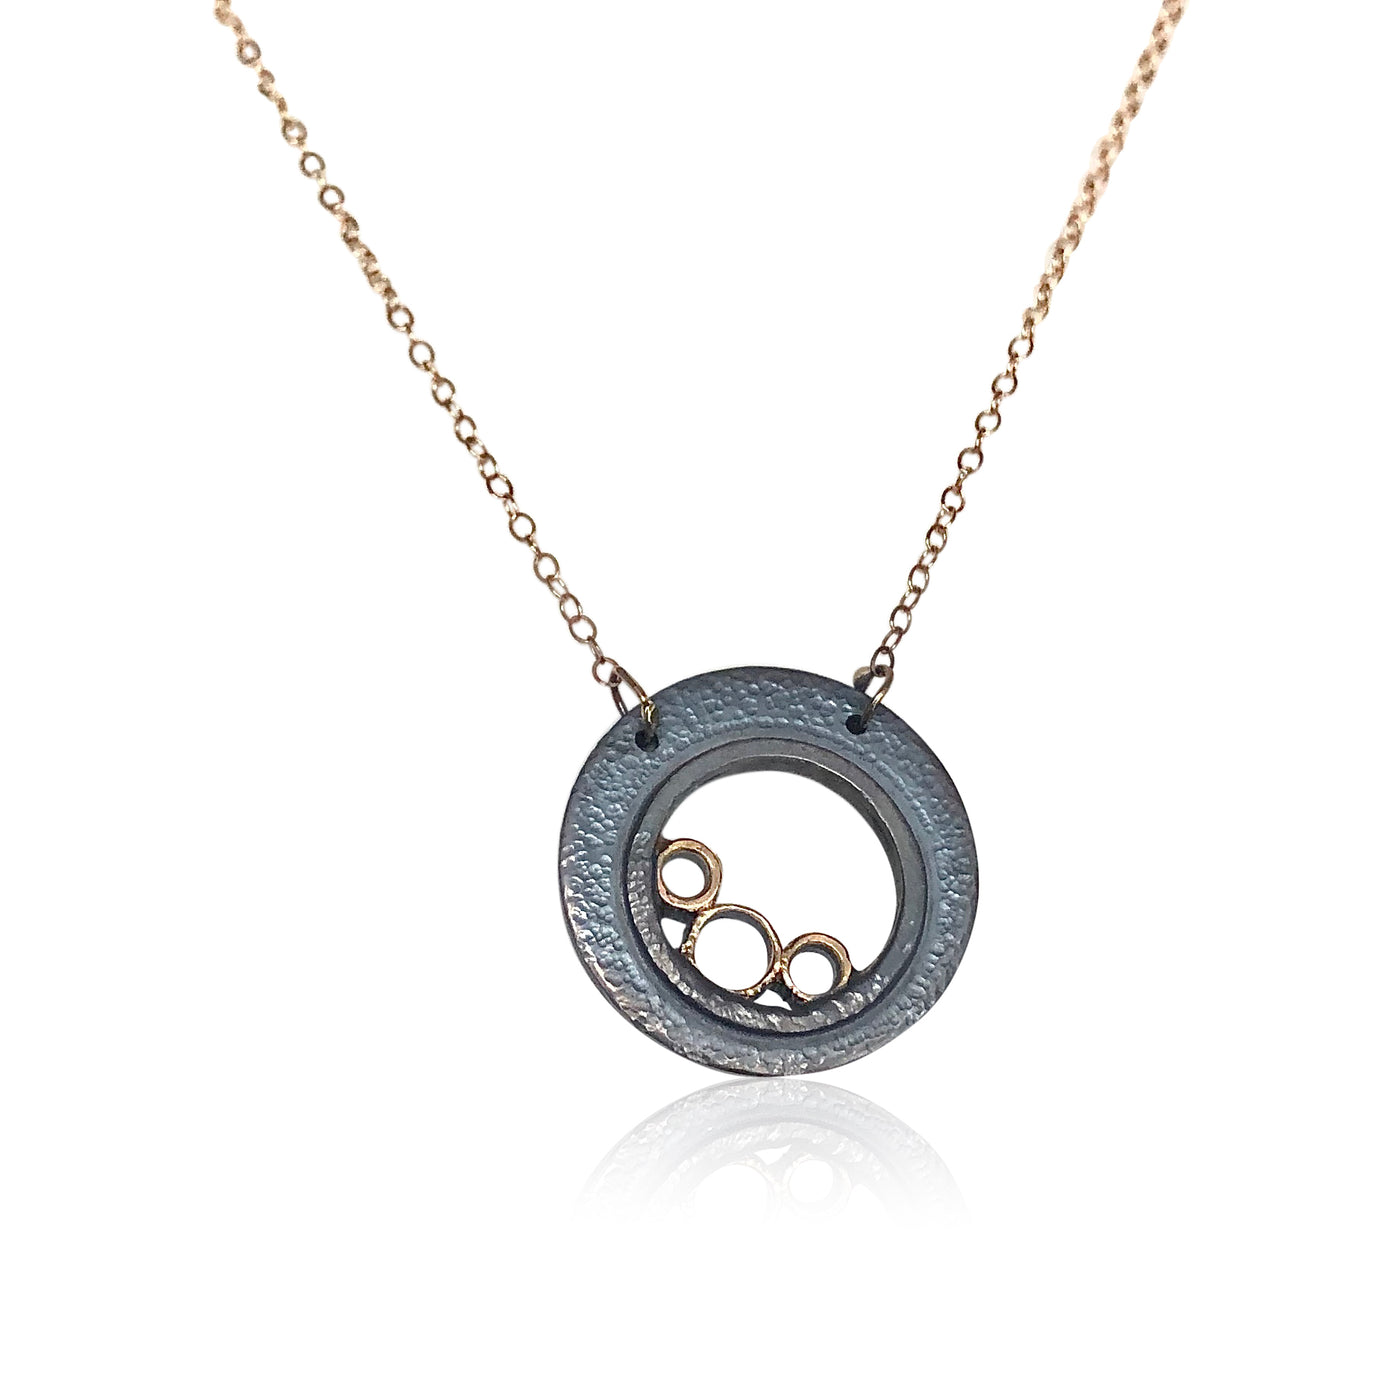 "NAMM1-""Lucky Bubble Necklace"" Textured and Oxidized Sterling Silver and 14KT Gold Necklace on Gold Chain"